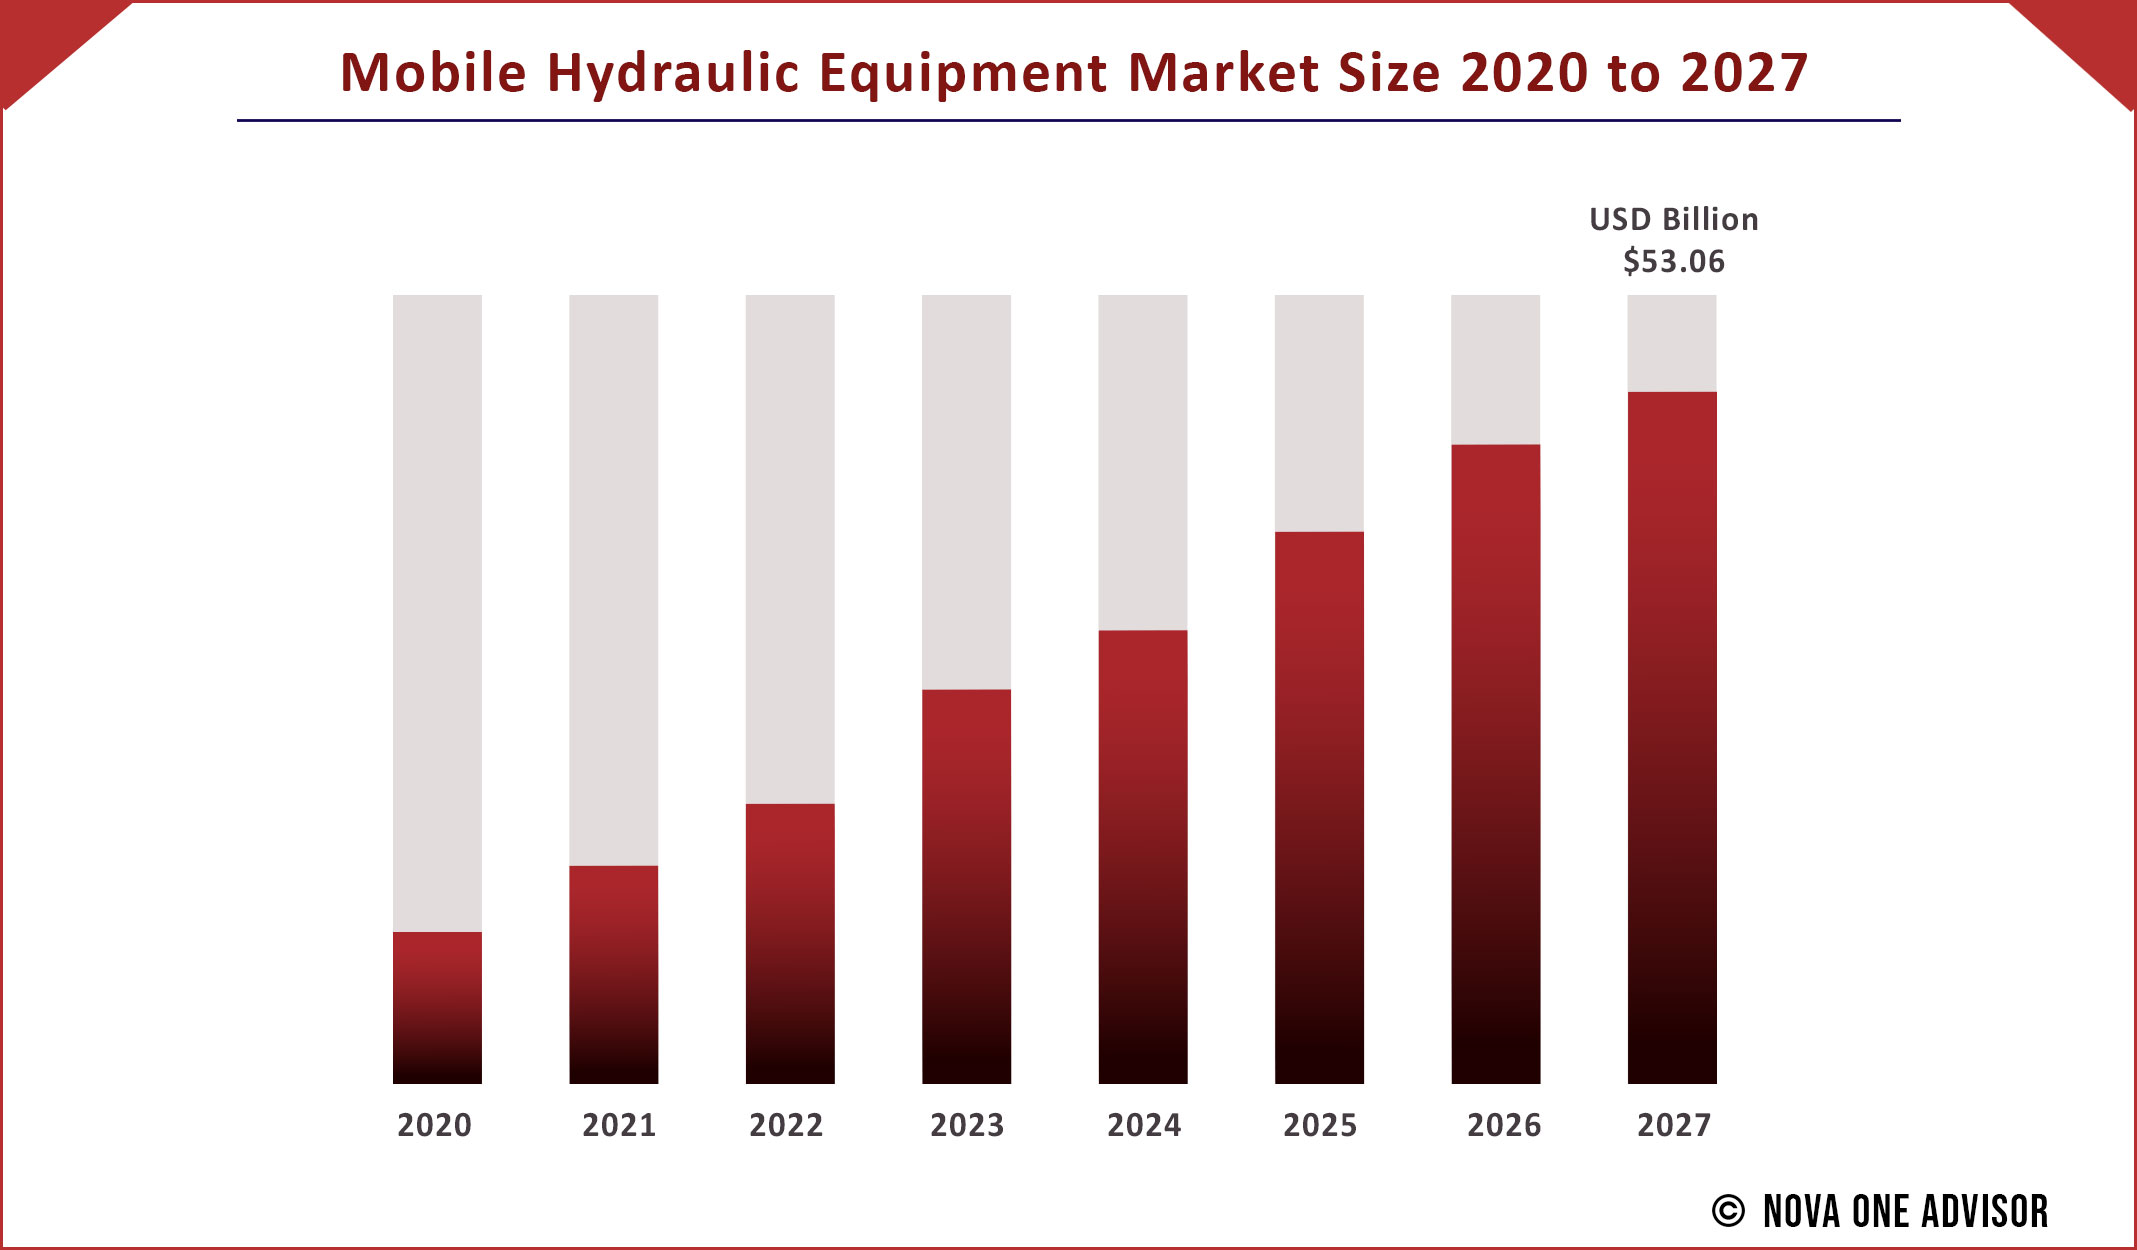 Mobile Hydraulic Equipment Market Size 2020 to 2027